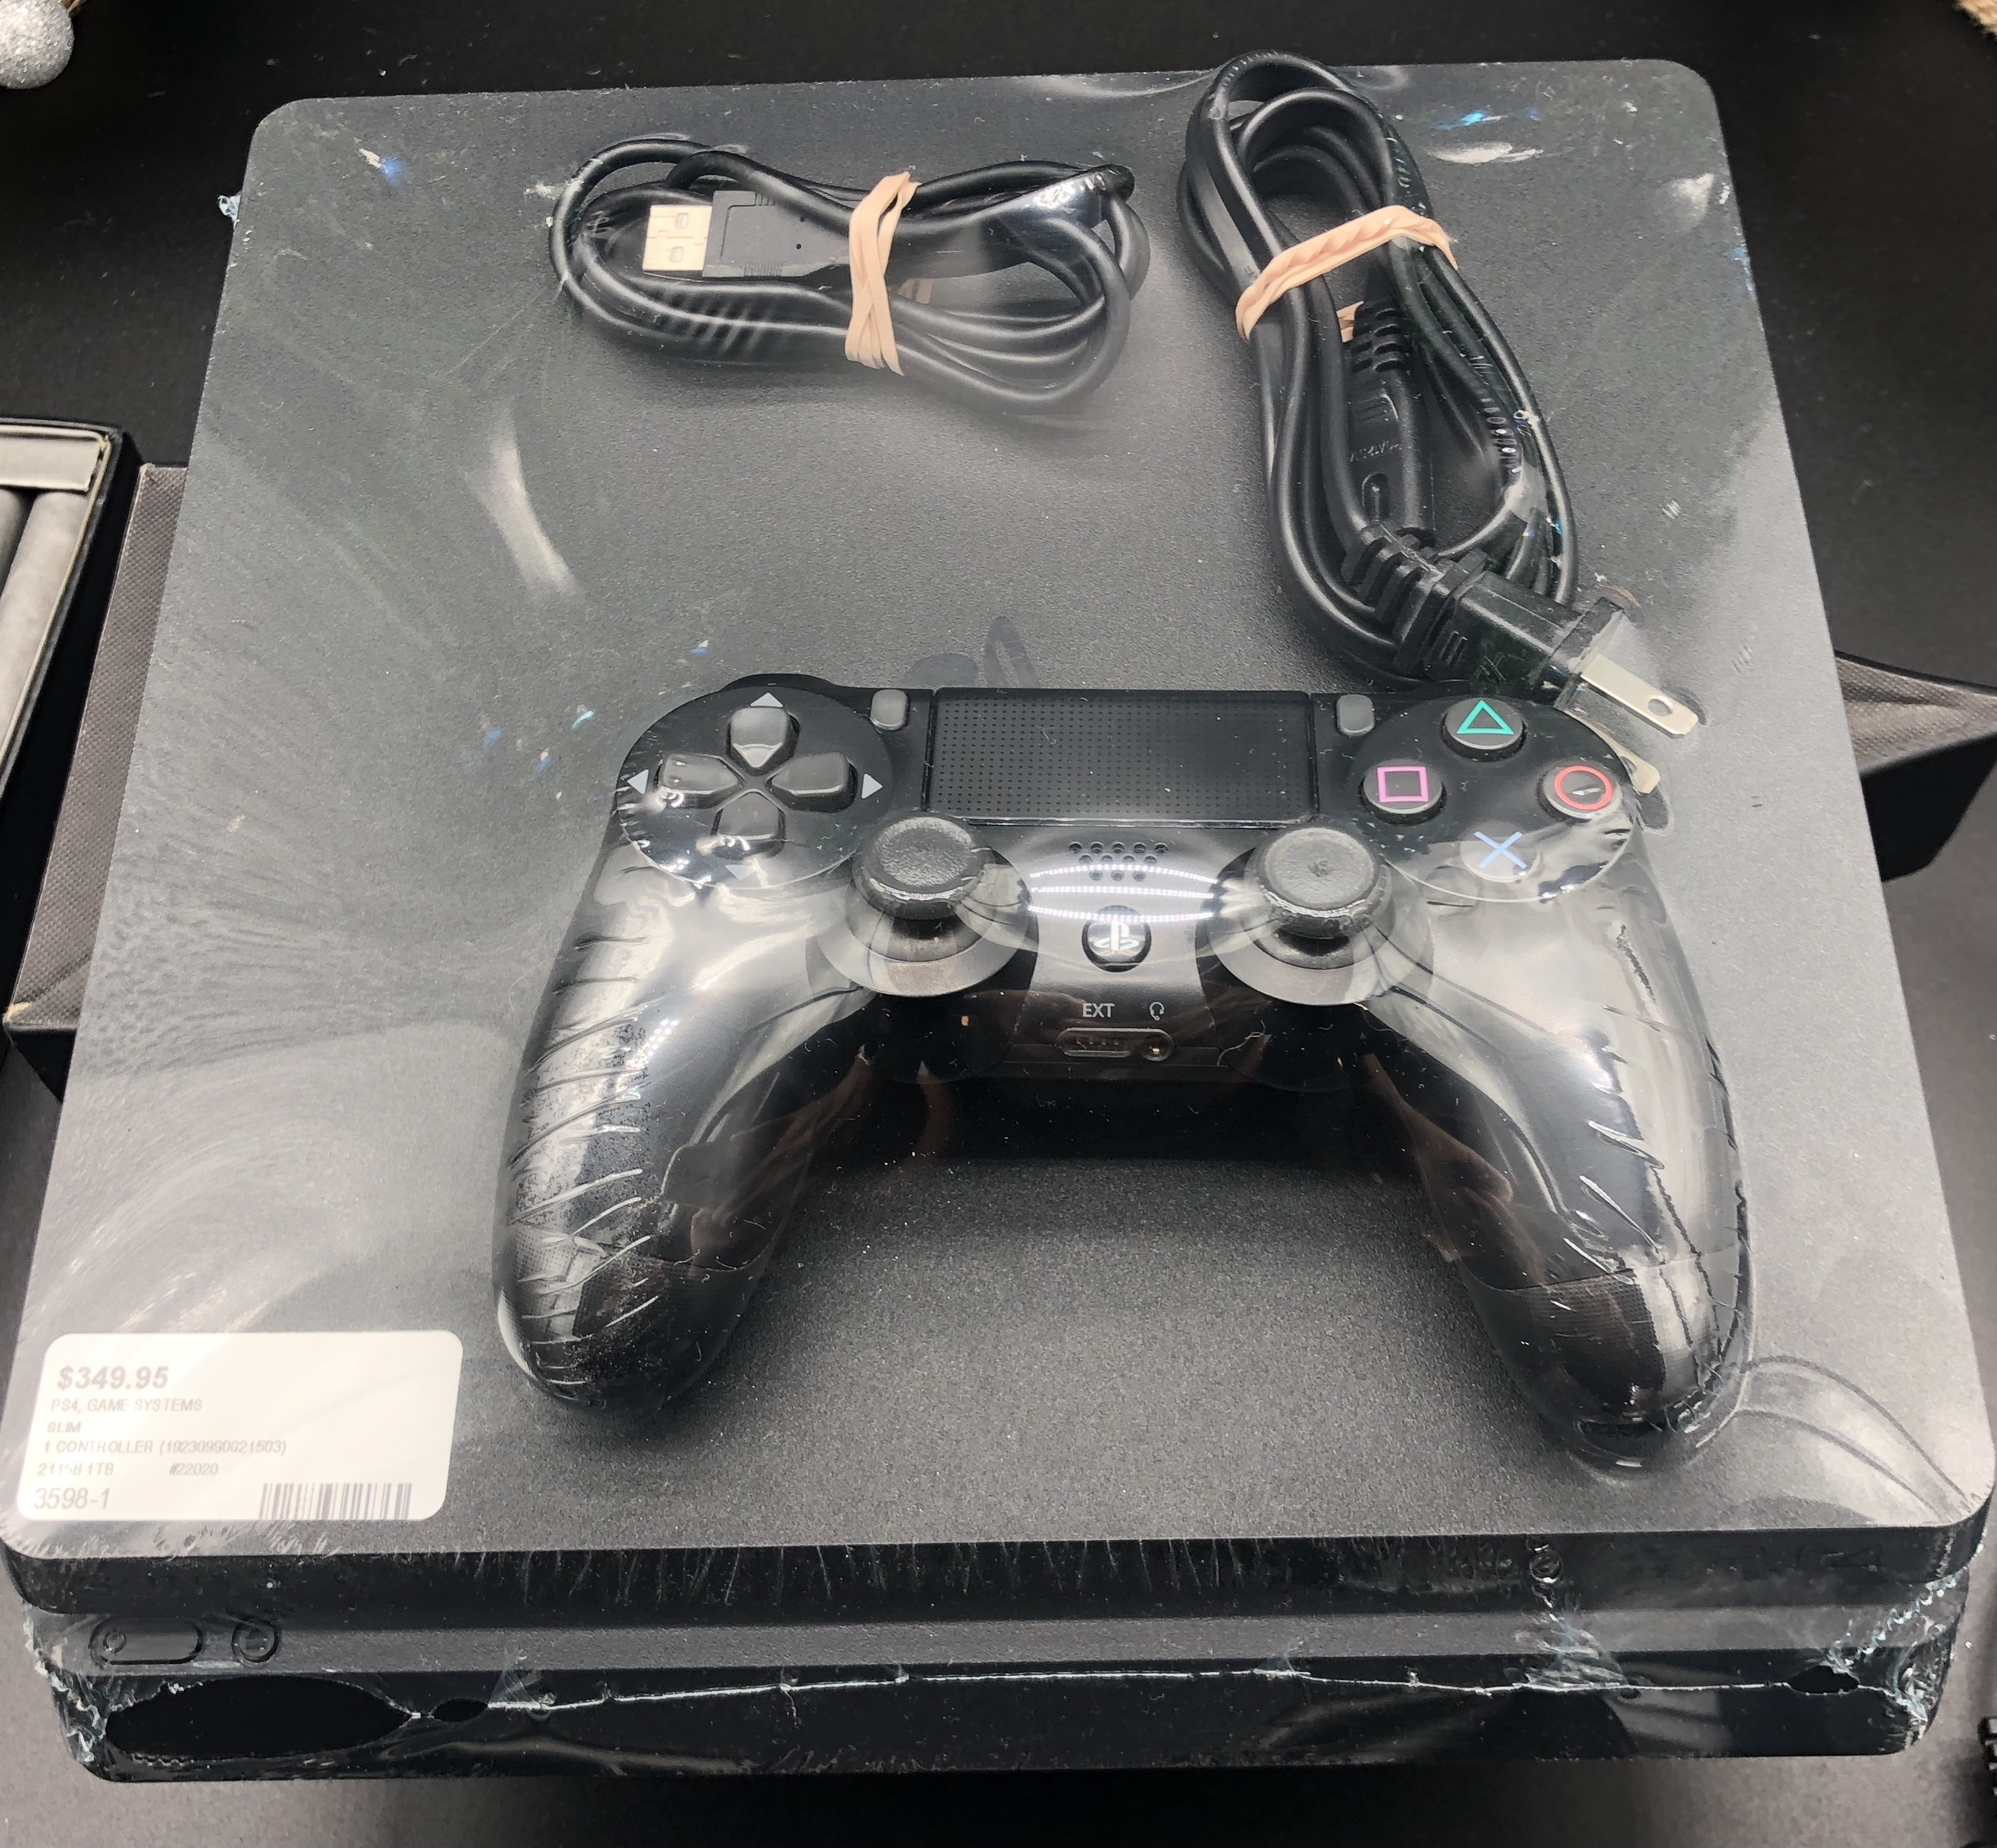 SLIM - 2115B 1TB - PS4 GAME SYSTEMS